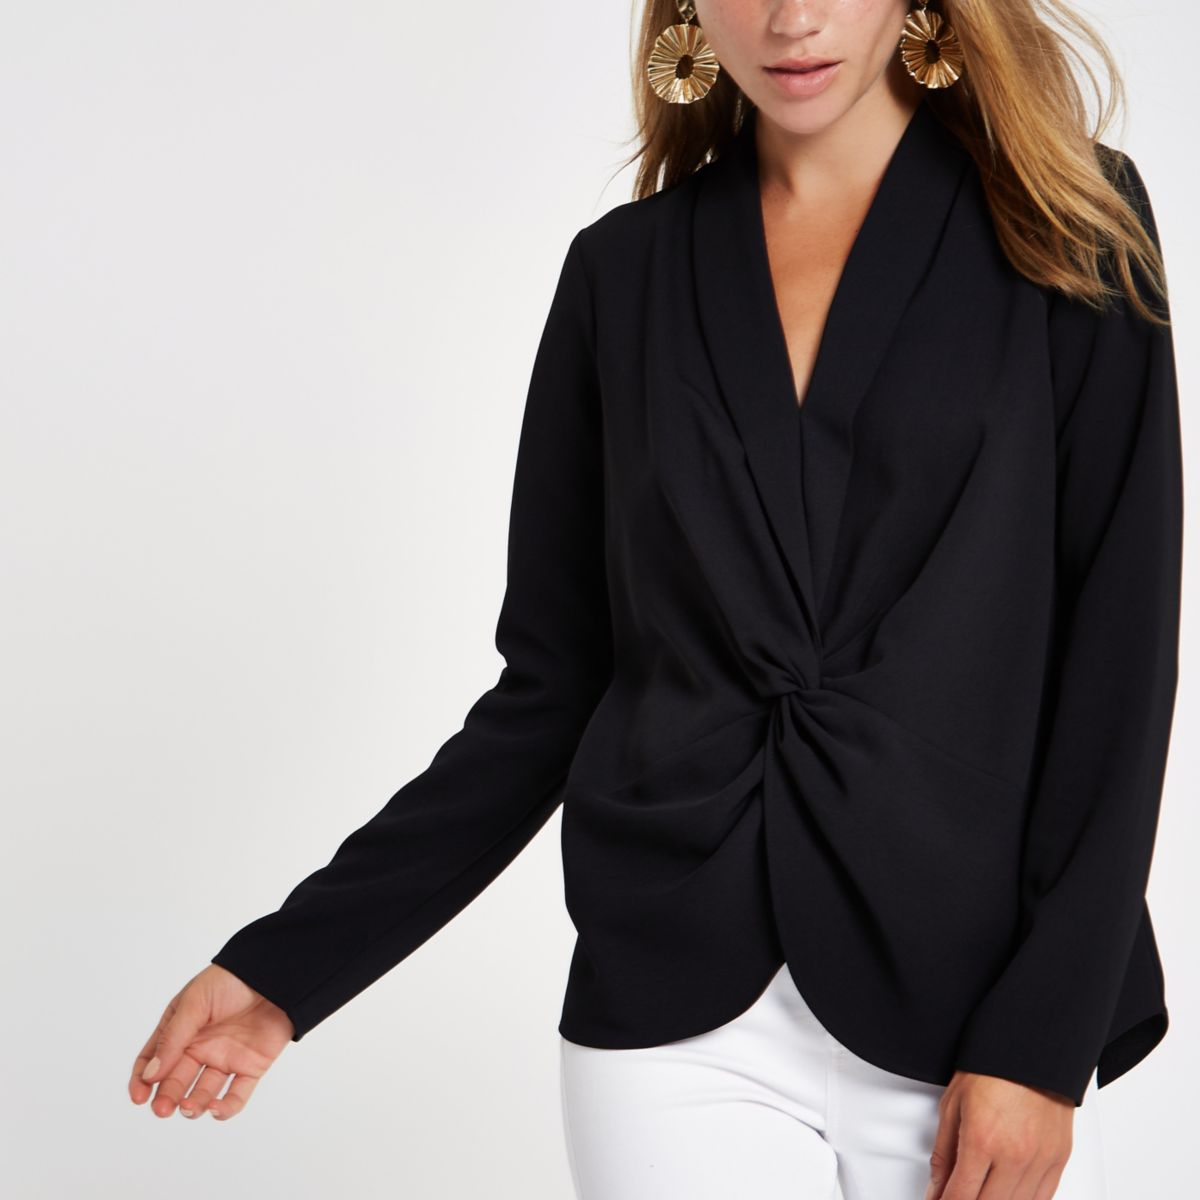 Black V neck twist front blouse